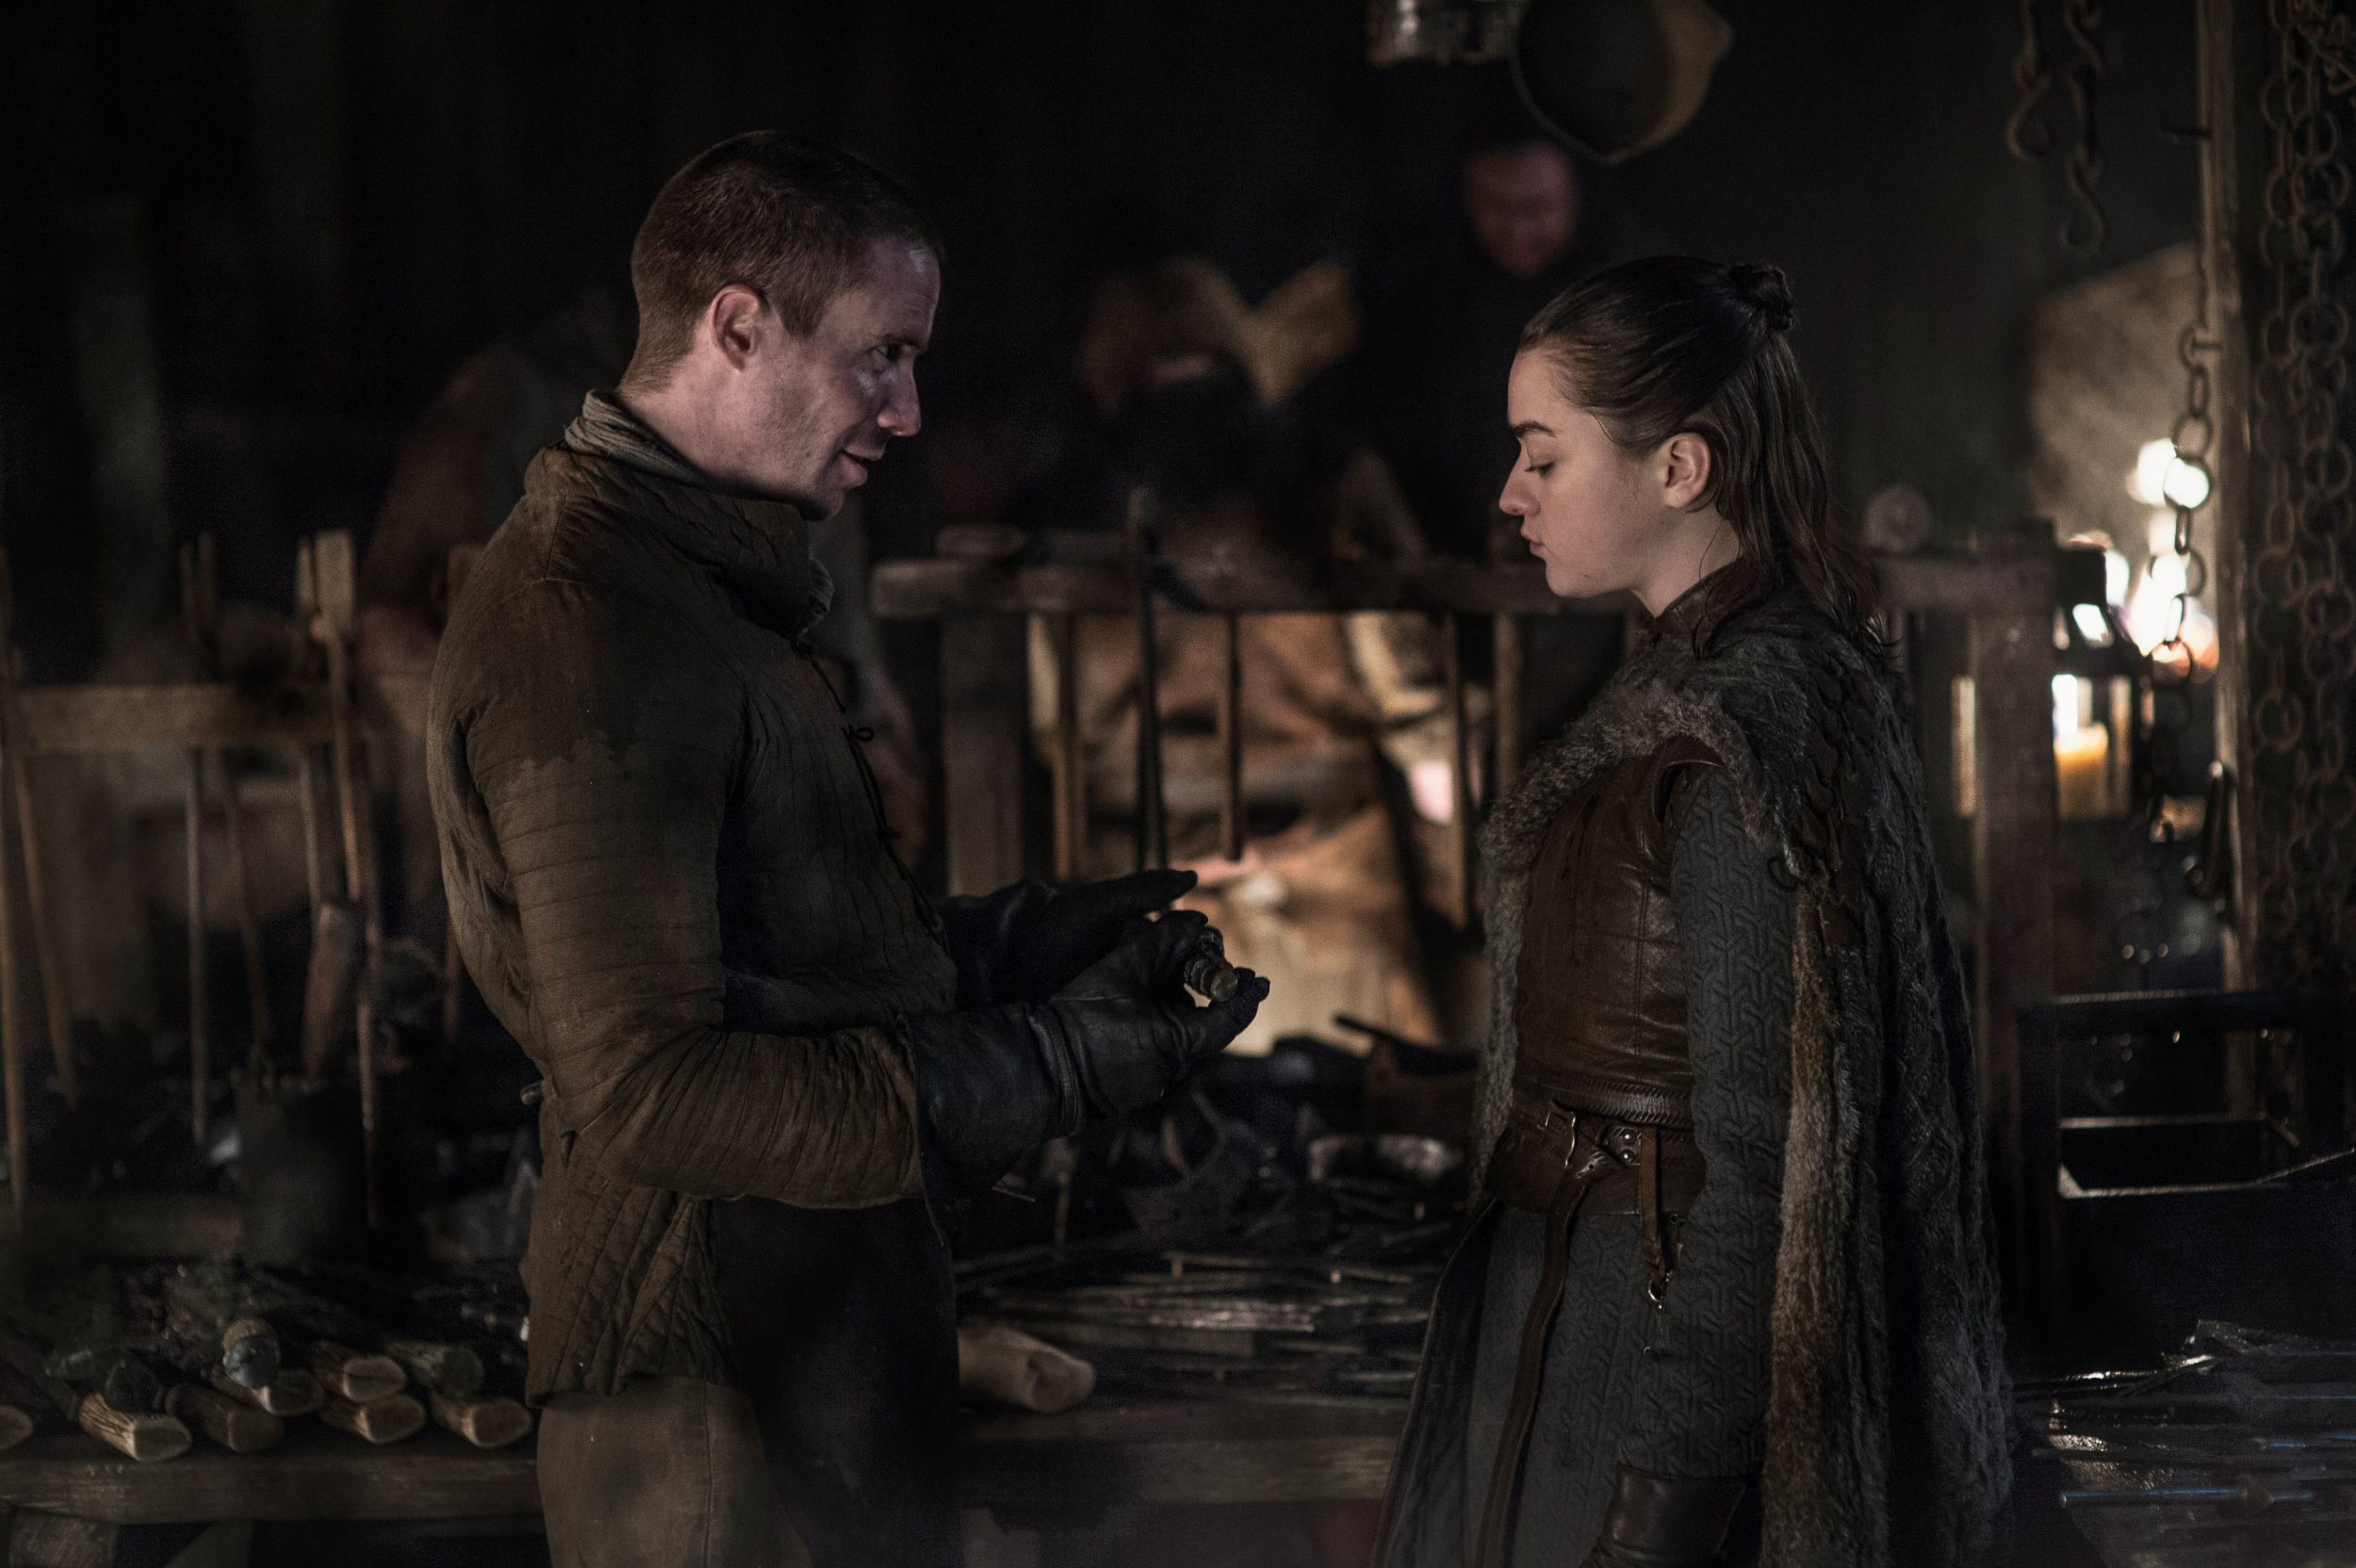 arya gendry forge sex